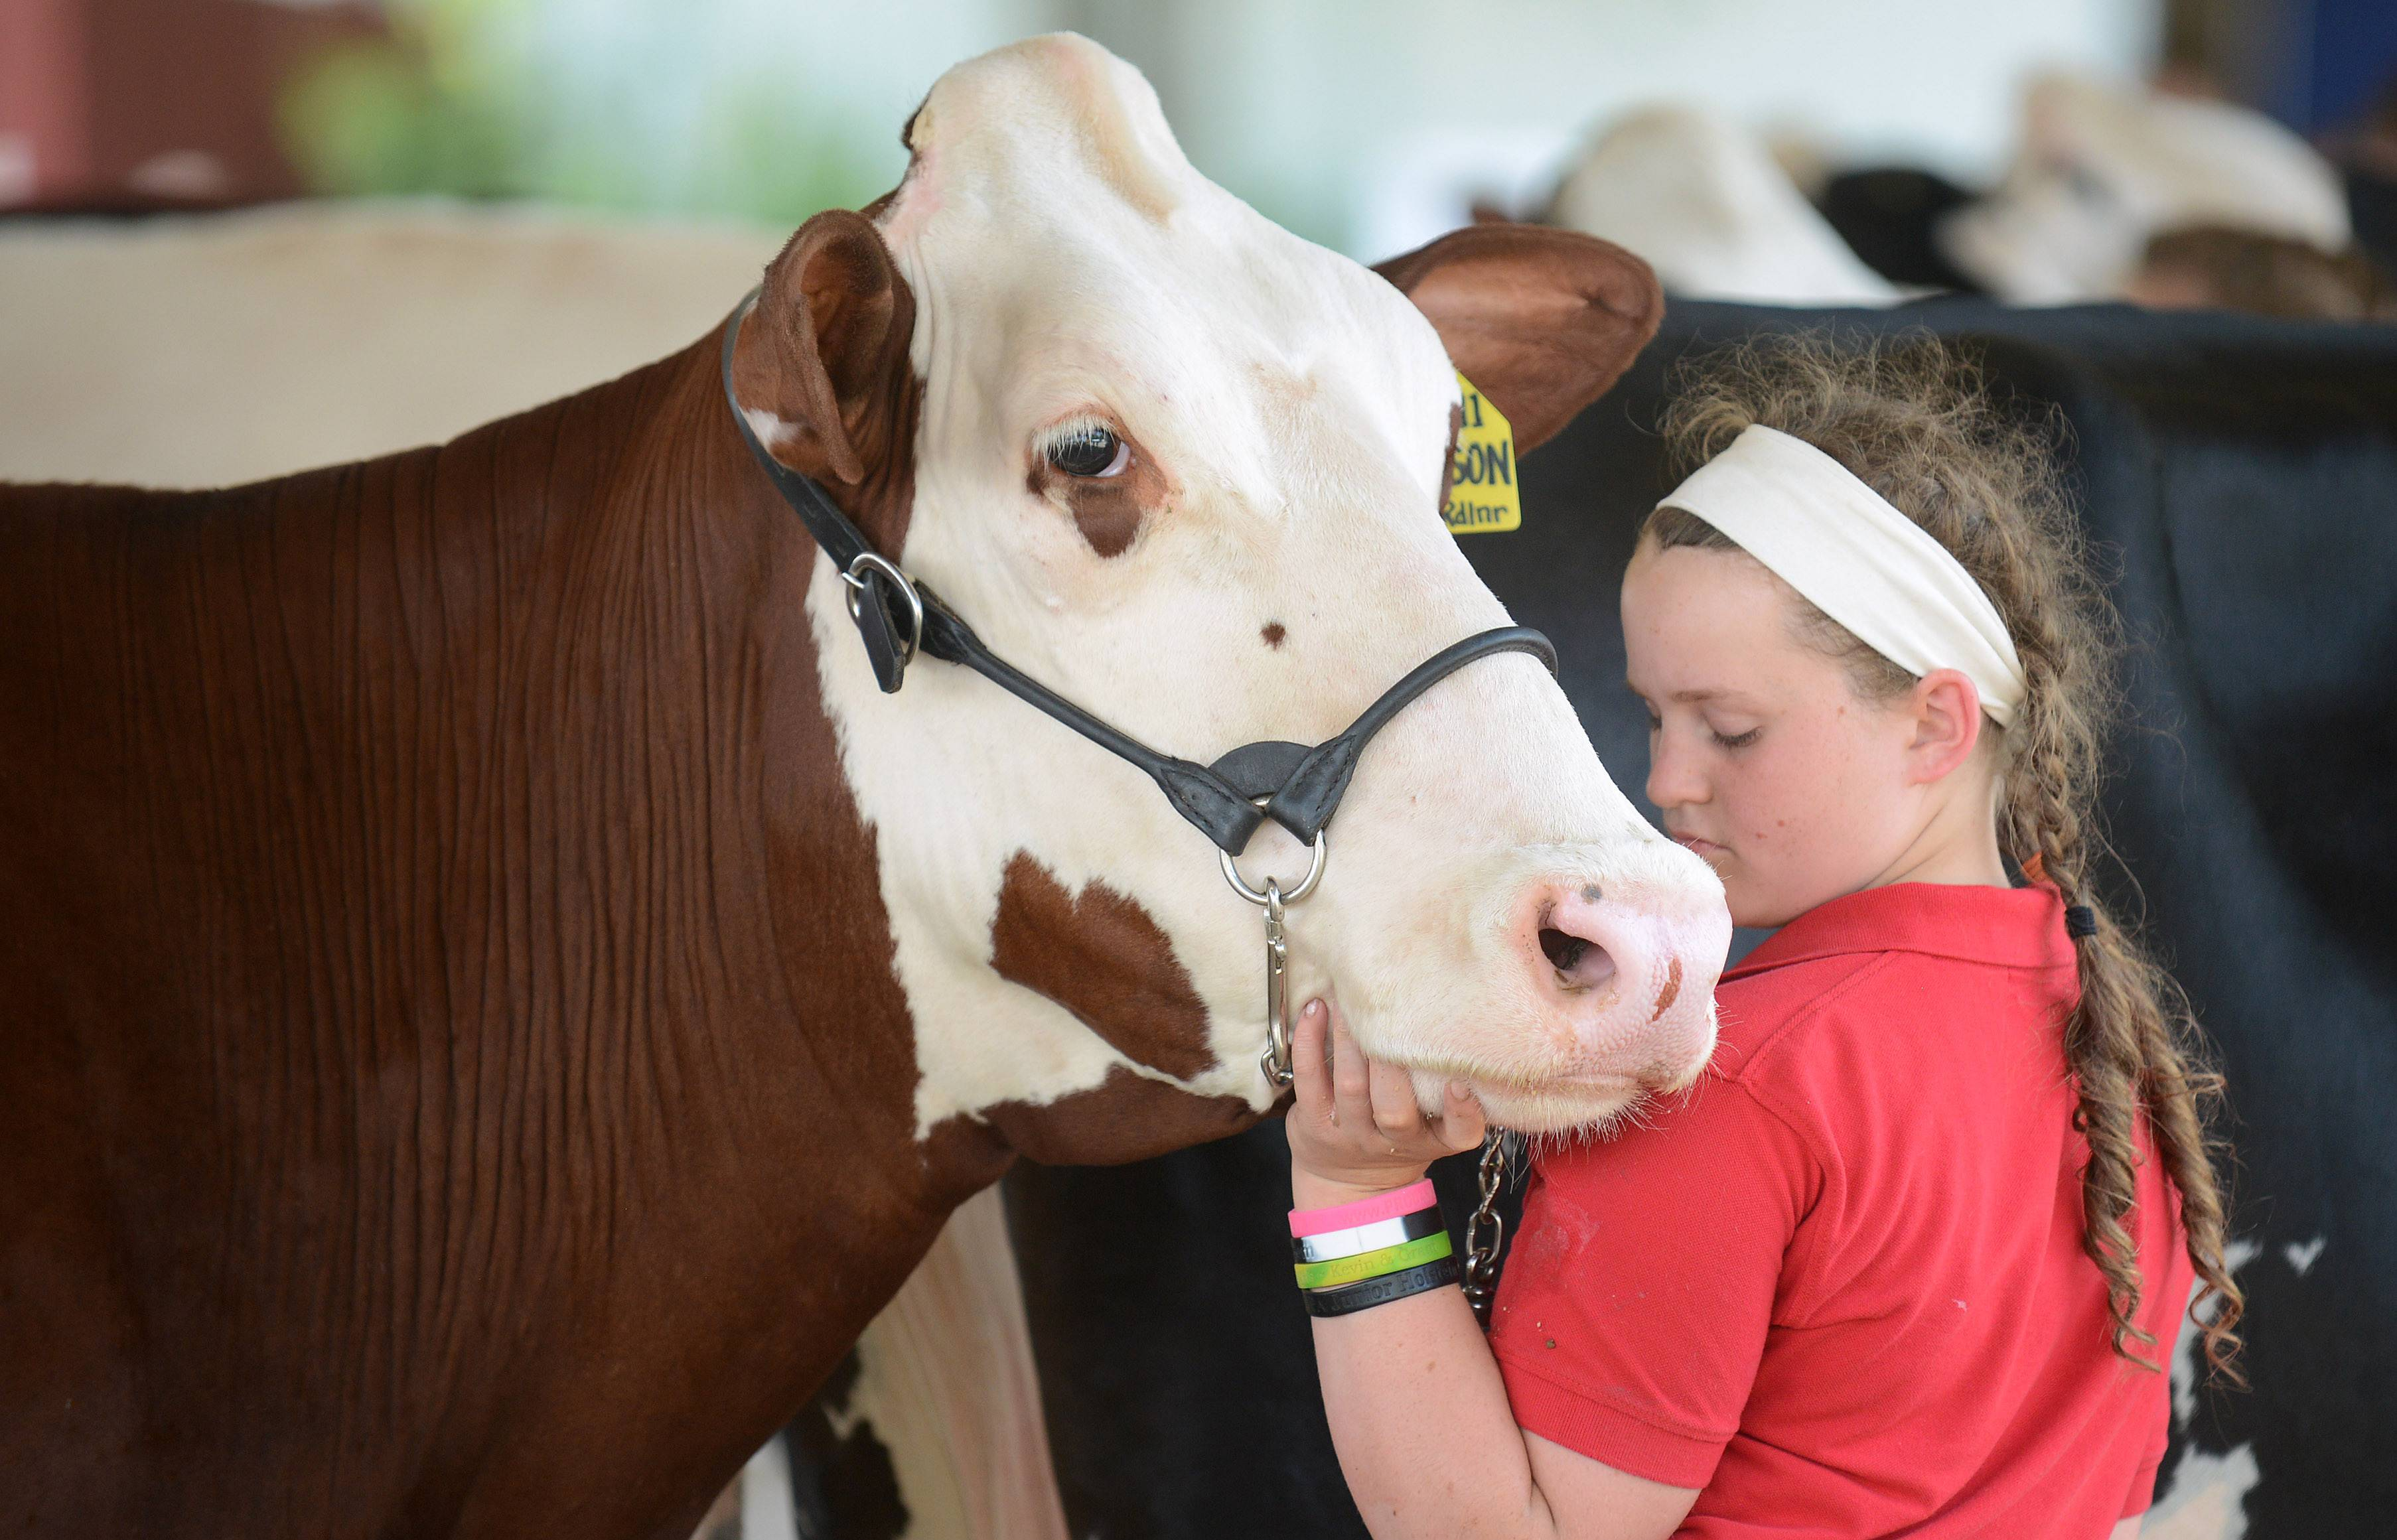 Emily Sheehan, 13, of Huntley shows Alyson, a 2-year-old 1,200-pound red and white Holstein in the Jr. Champion Class Friday at the McHenry County Fair. Emily was showing with her 4-H club, the Huntley Heartlanders.